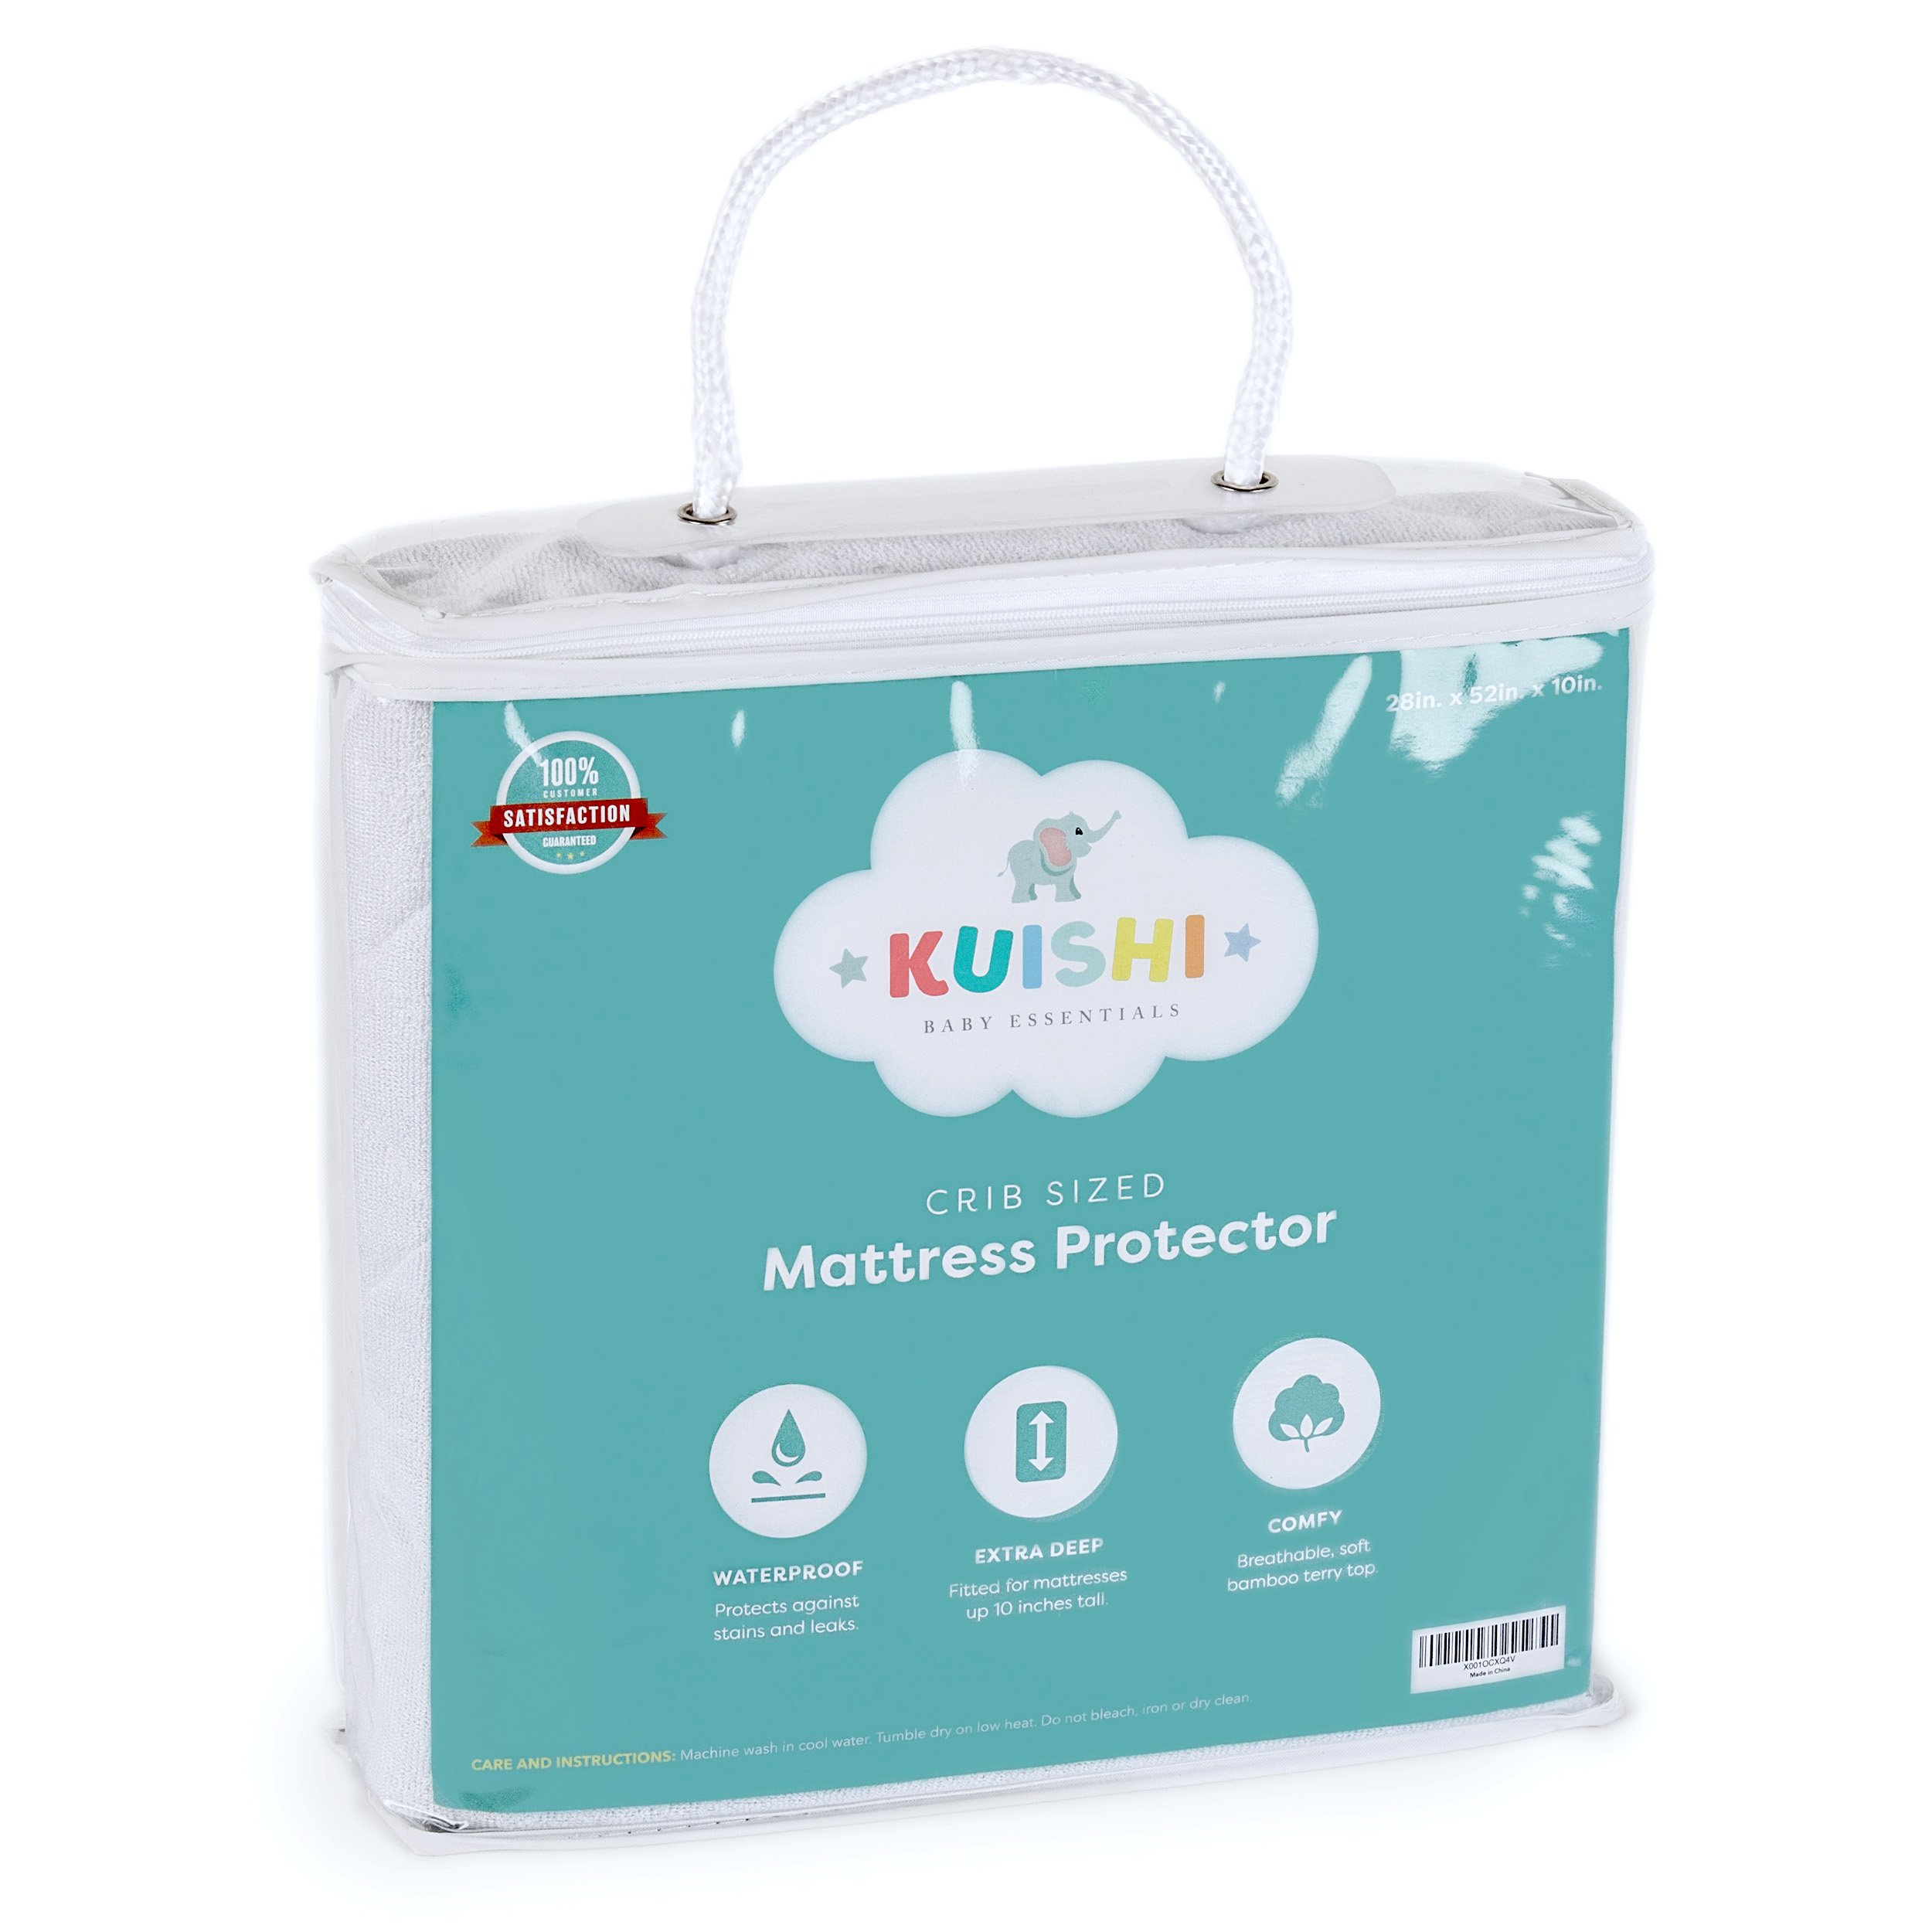 "Kuishi Crib Sized Premium Fitted Waterproof Mattress Protector | Breathable, Comfortable, Machine Wash Safe, Hypoallergenic, Bamboo (28"" x 52"" x 10"") by Kuishi Baby Essentials"